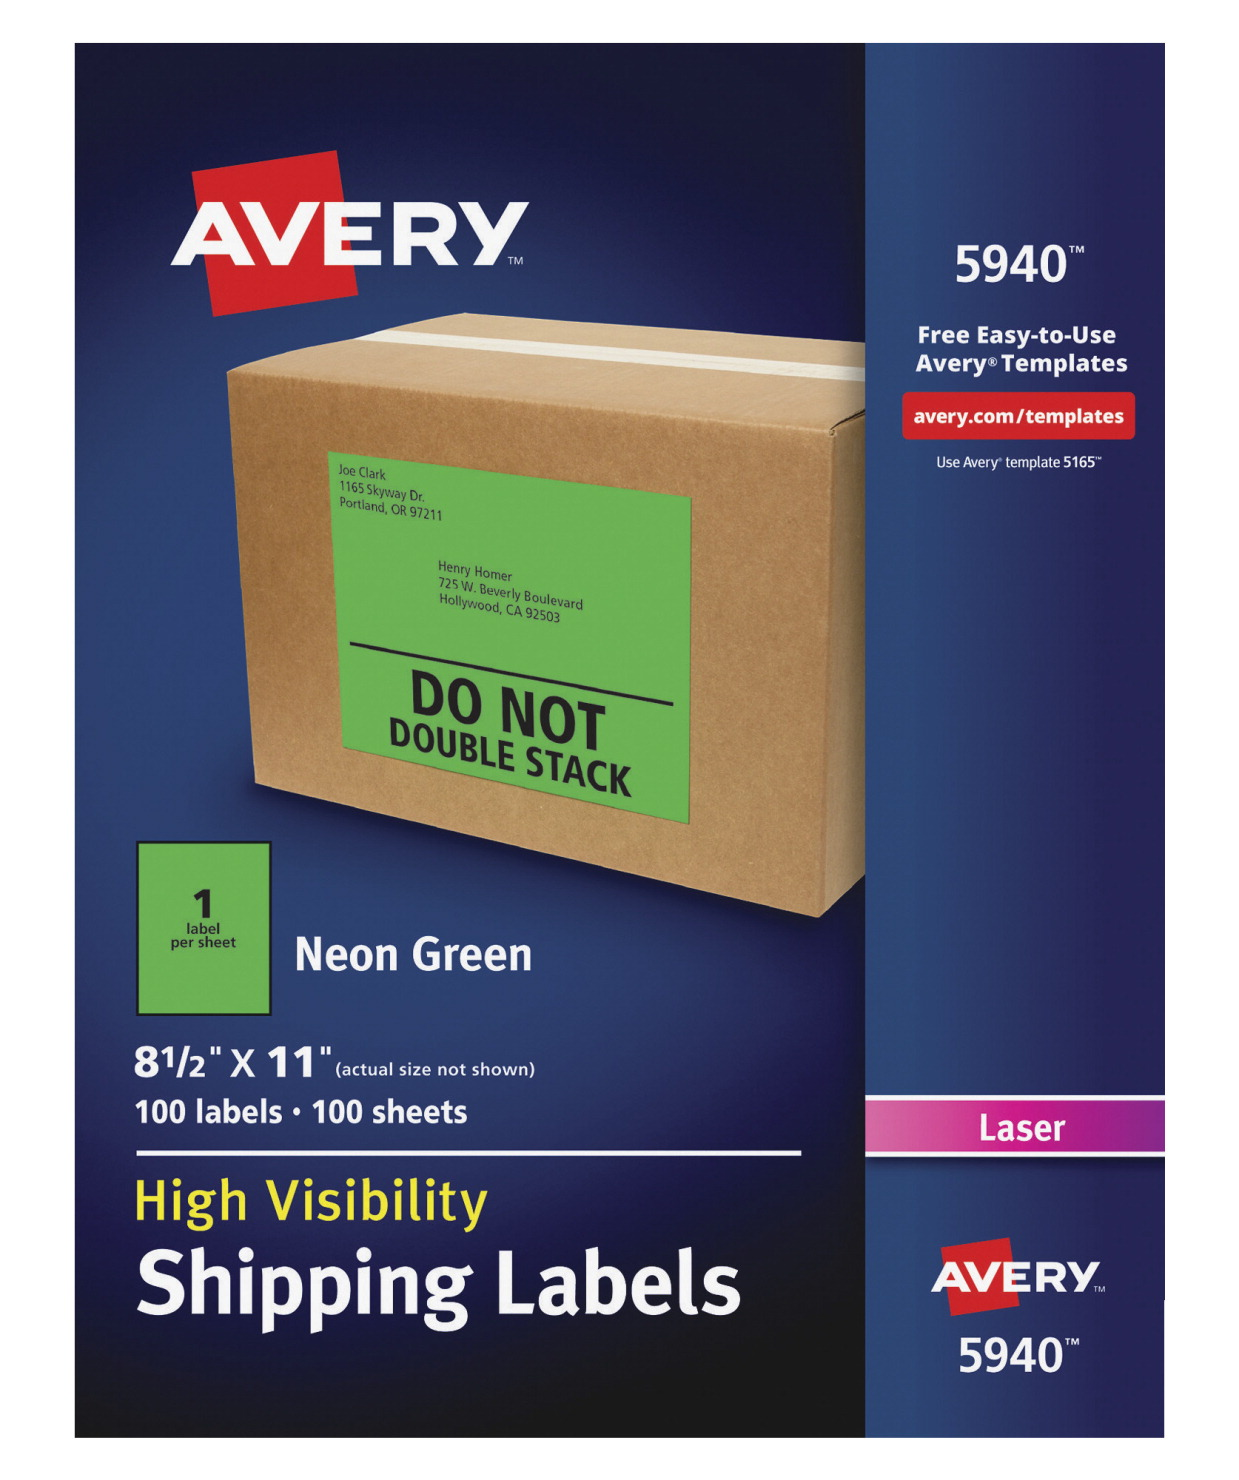 avery high visibility neon shipping labels 8 1 2 x 11 in 100 sheets